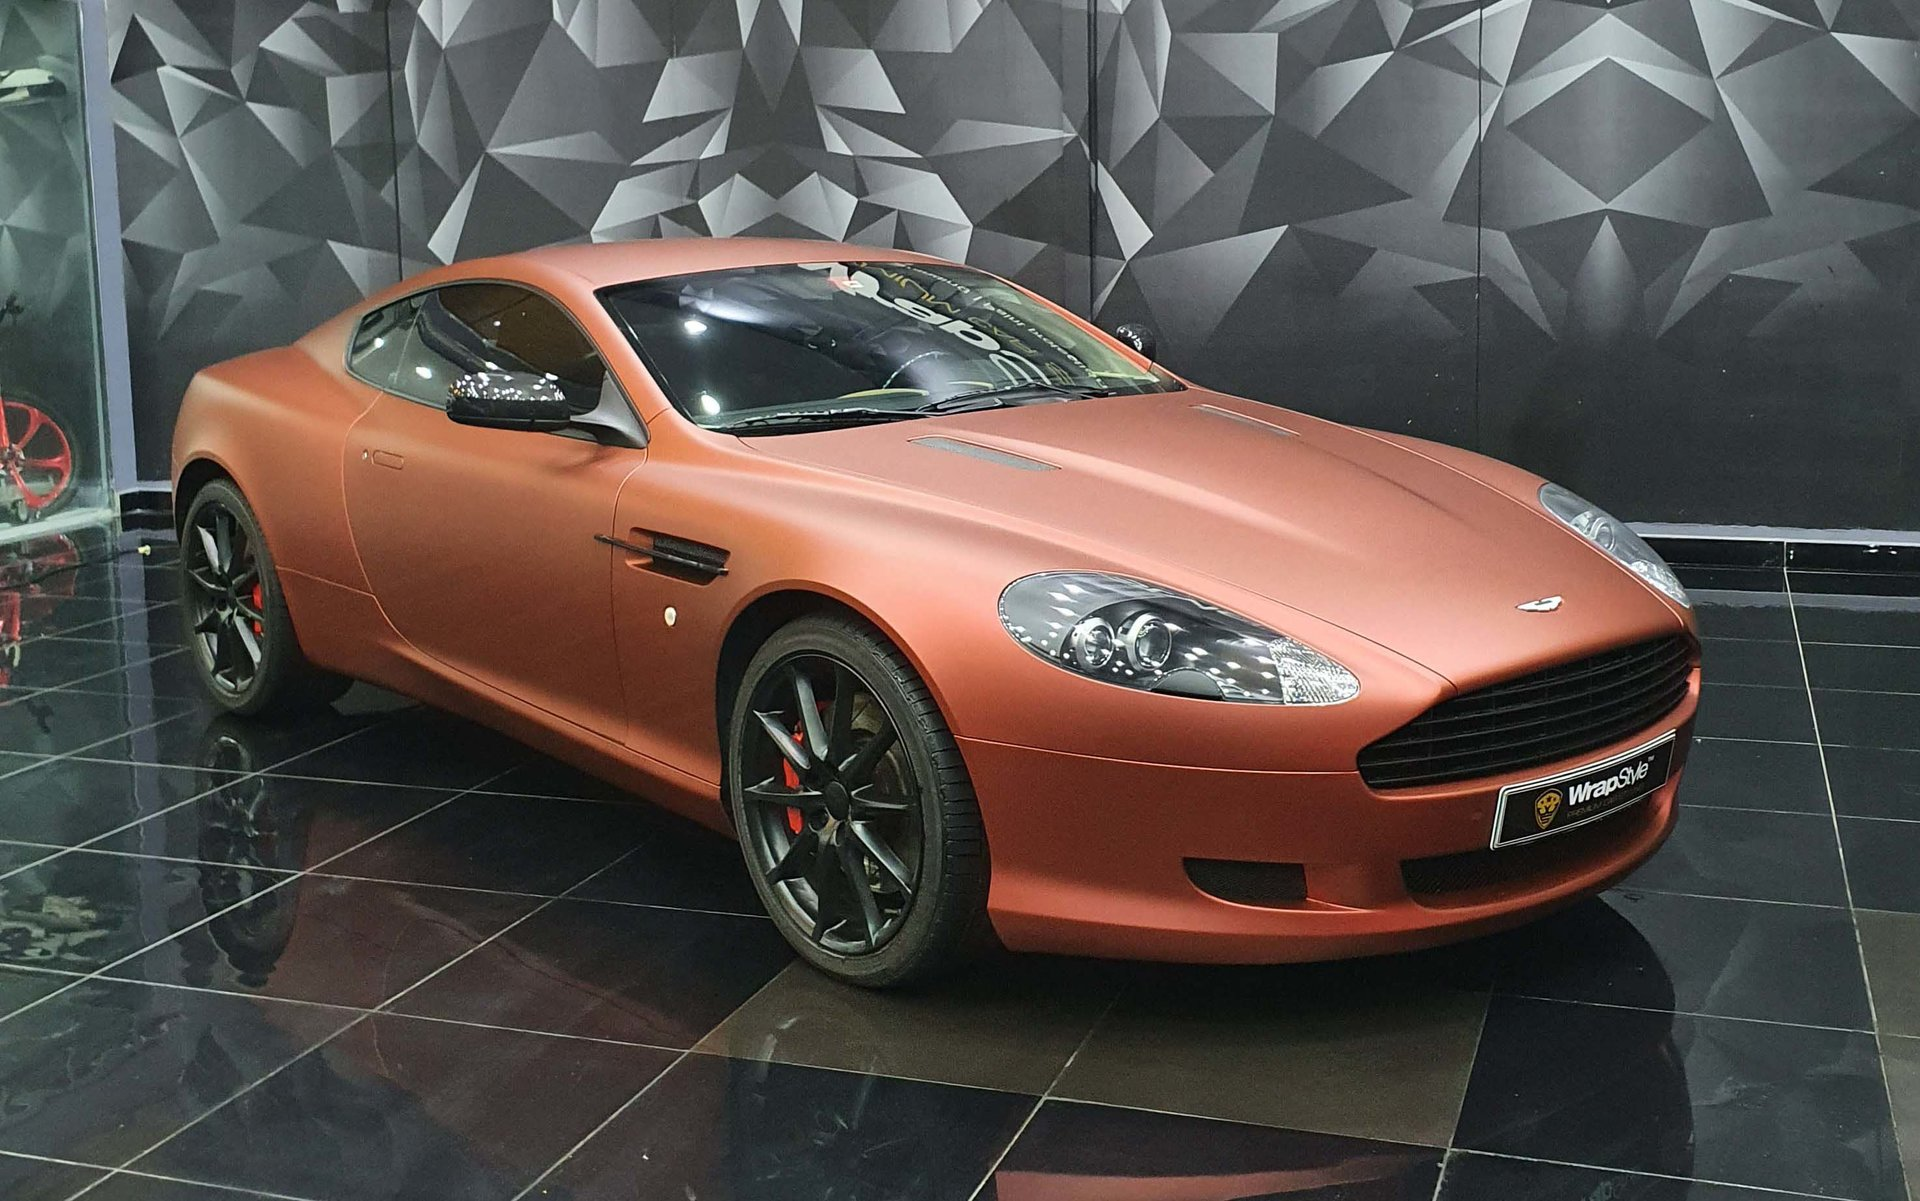 Aston Martin Db9 Red Aluminium Wrap Wrapstyle